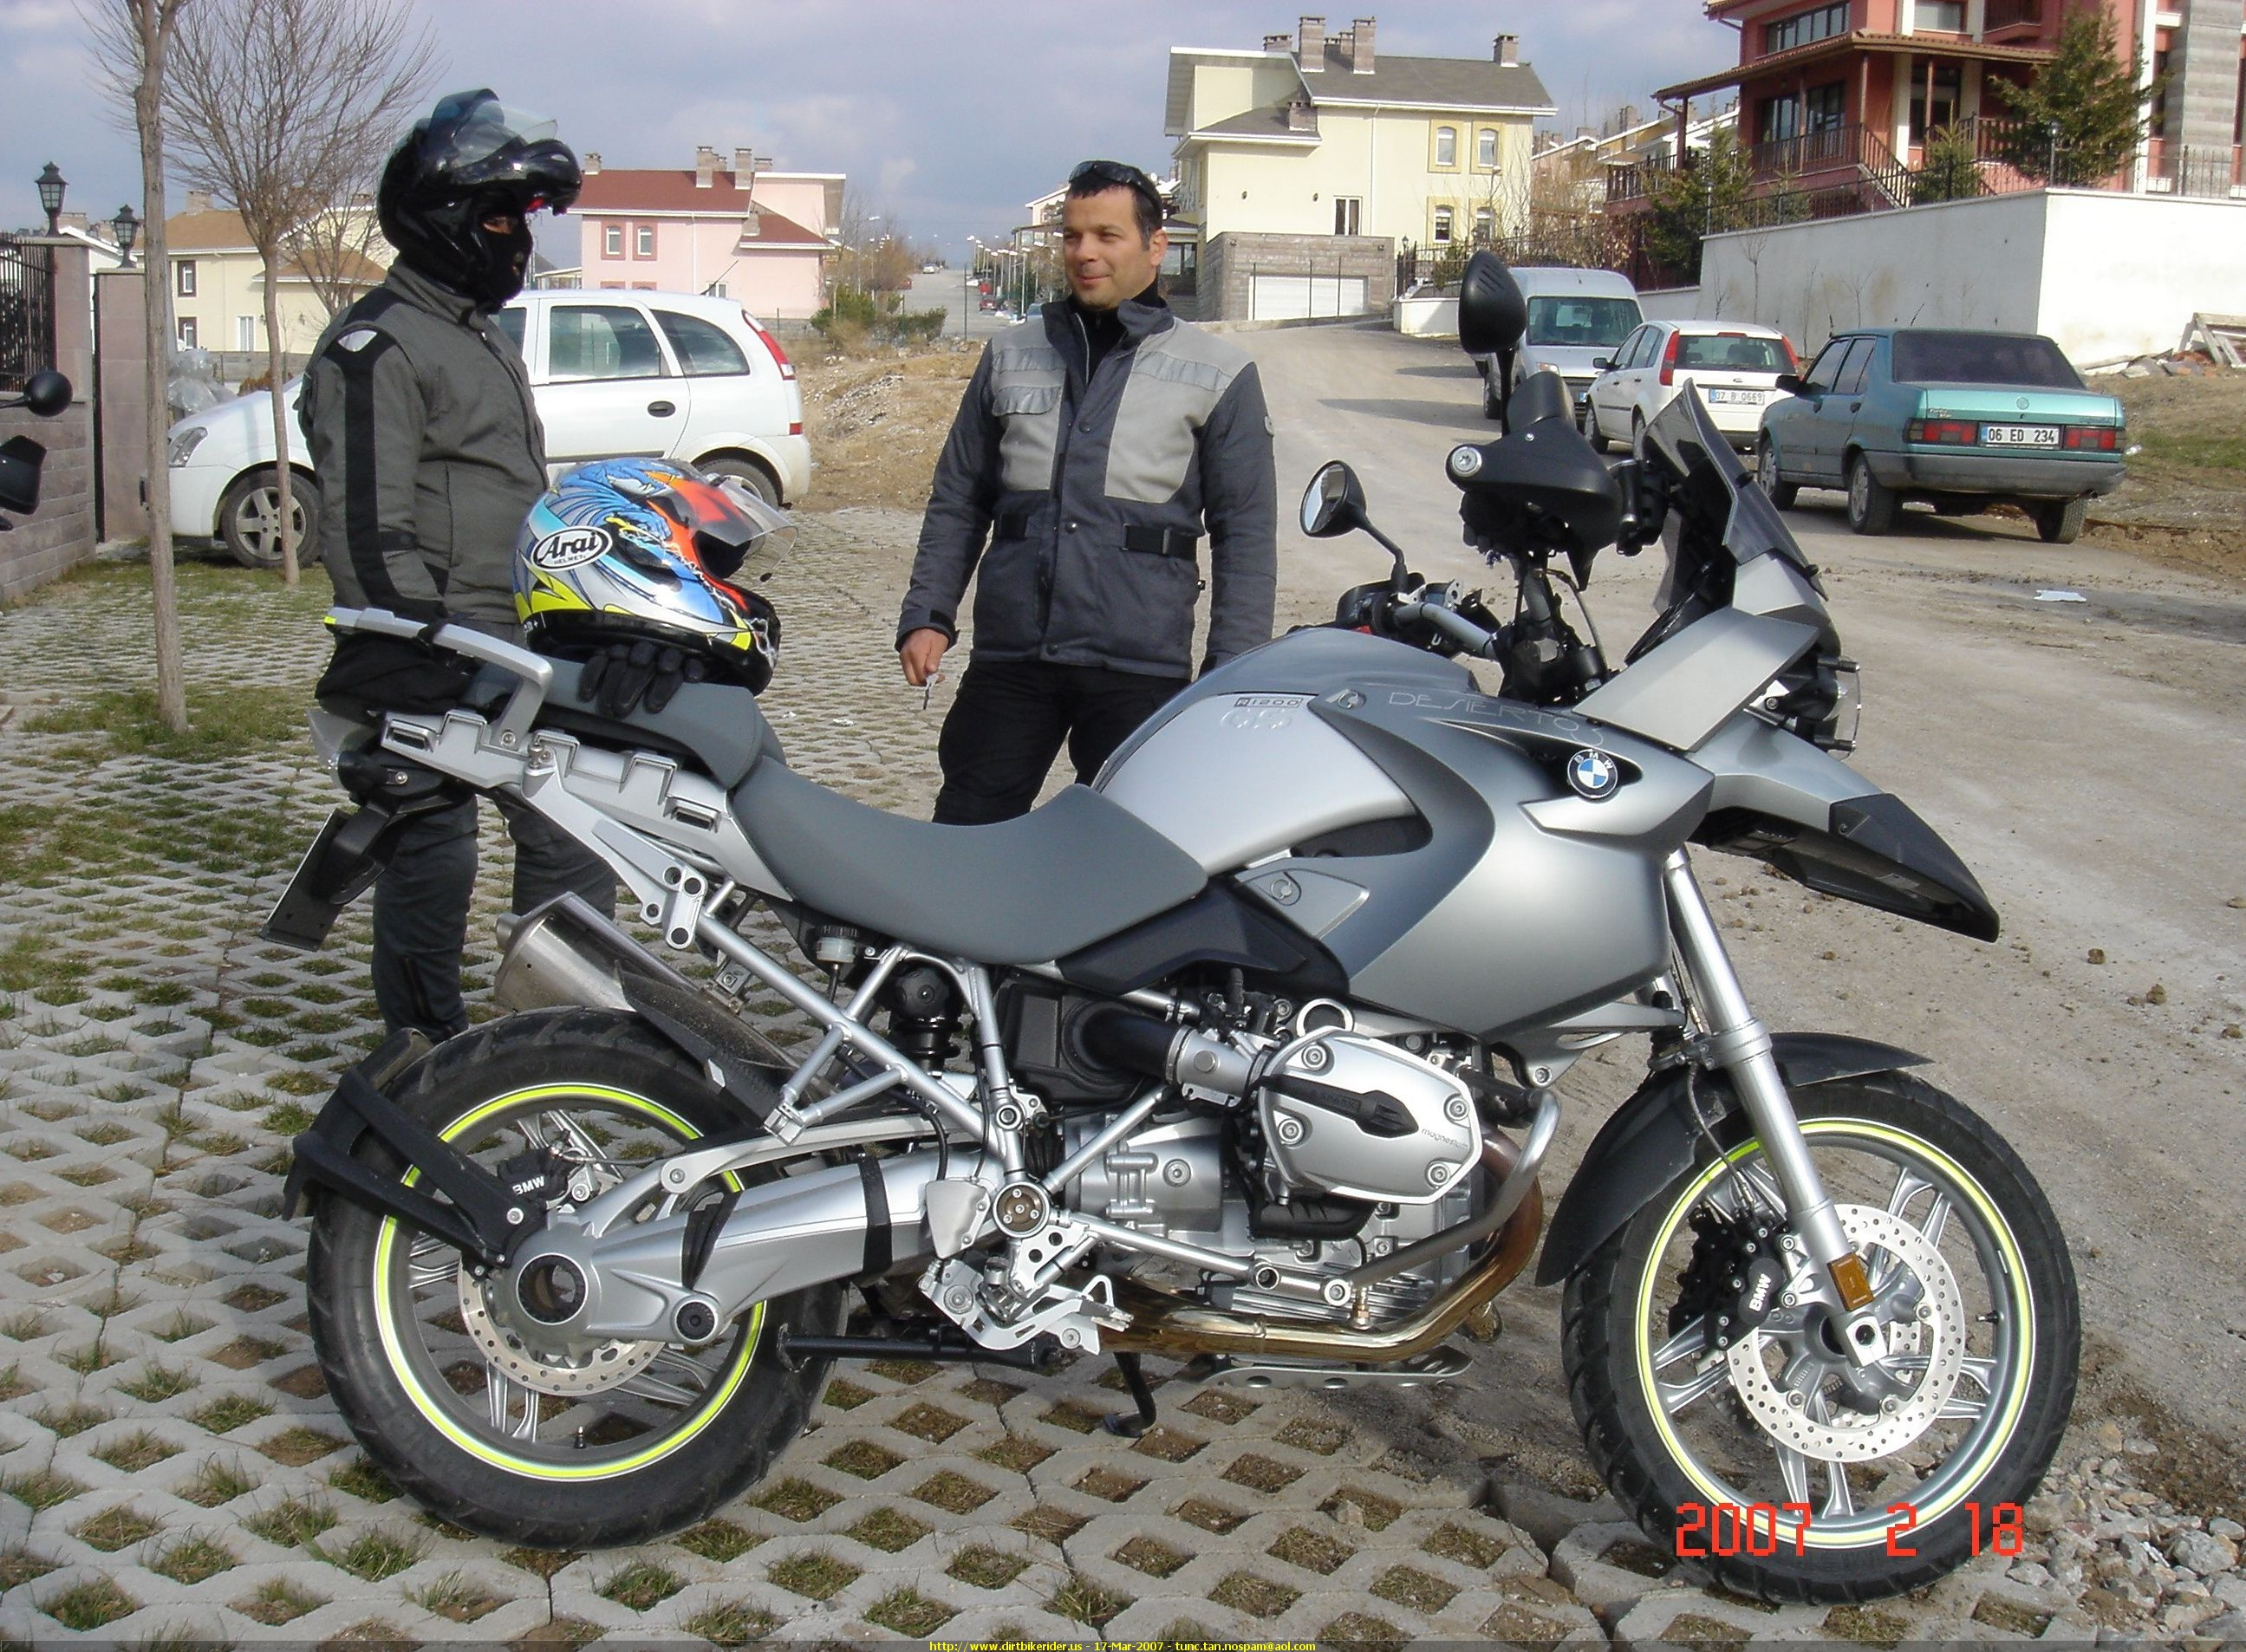 BMW R1200GS images #8262